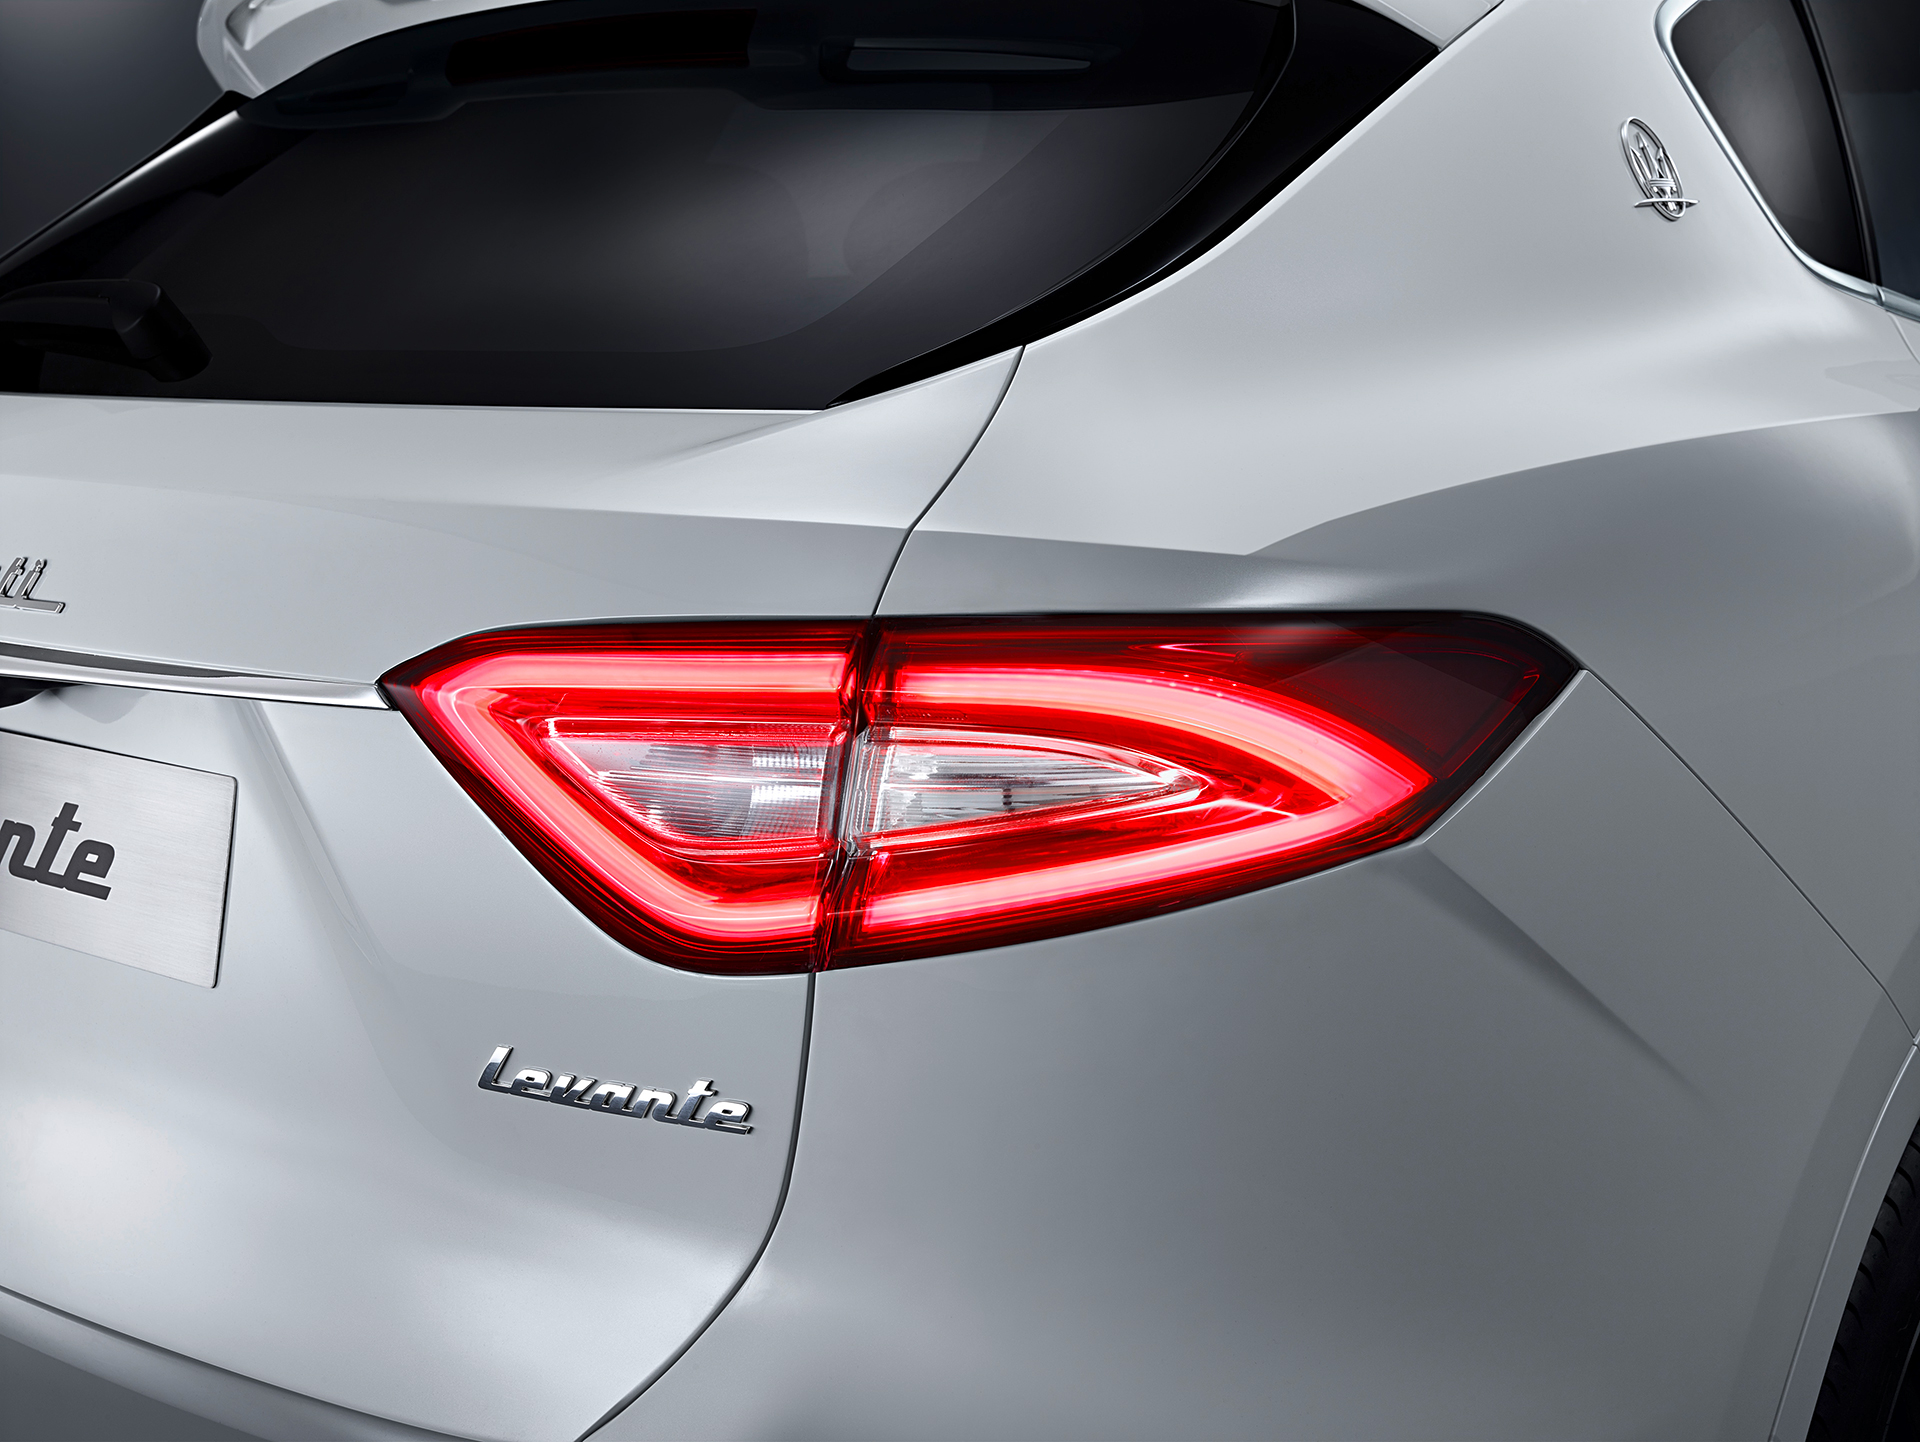 Maserati Levante - 2016 - rear light